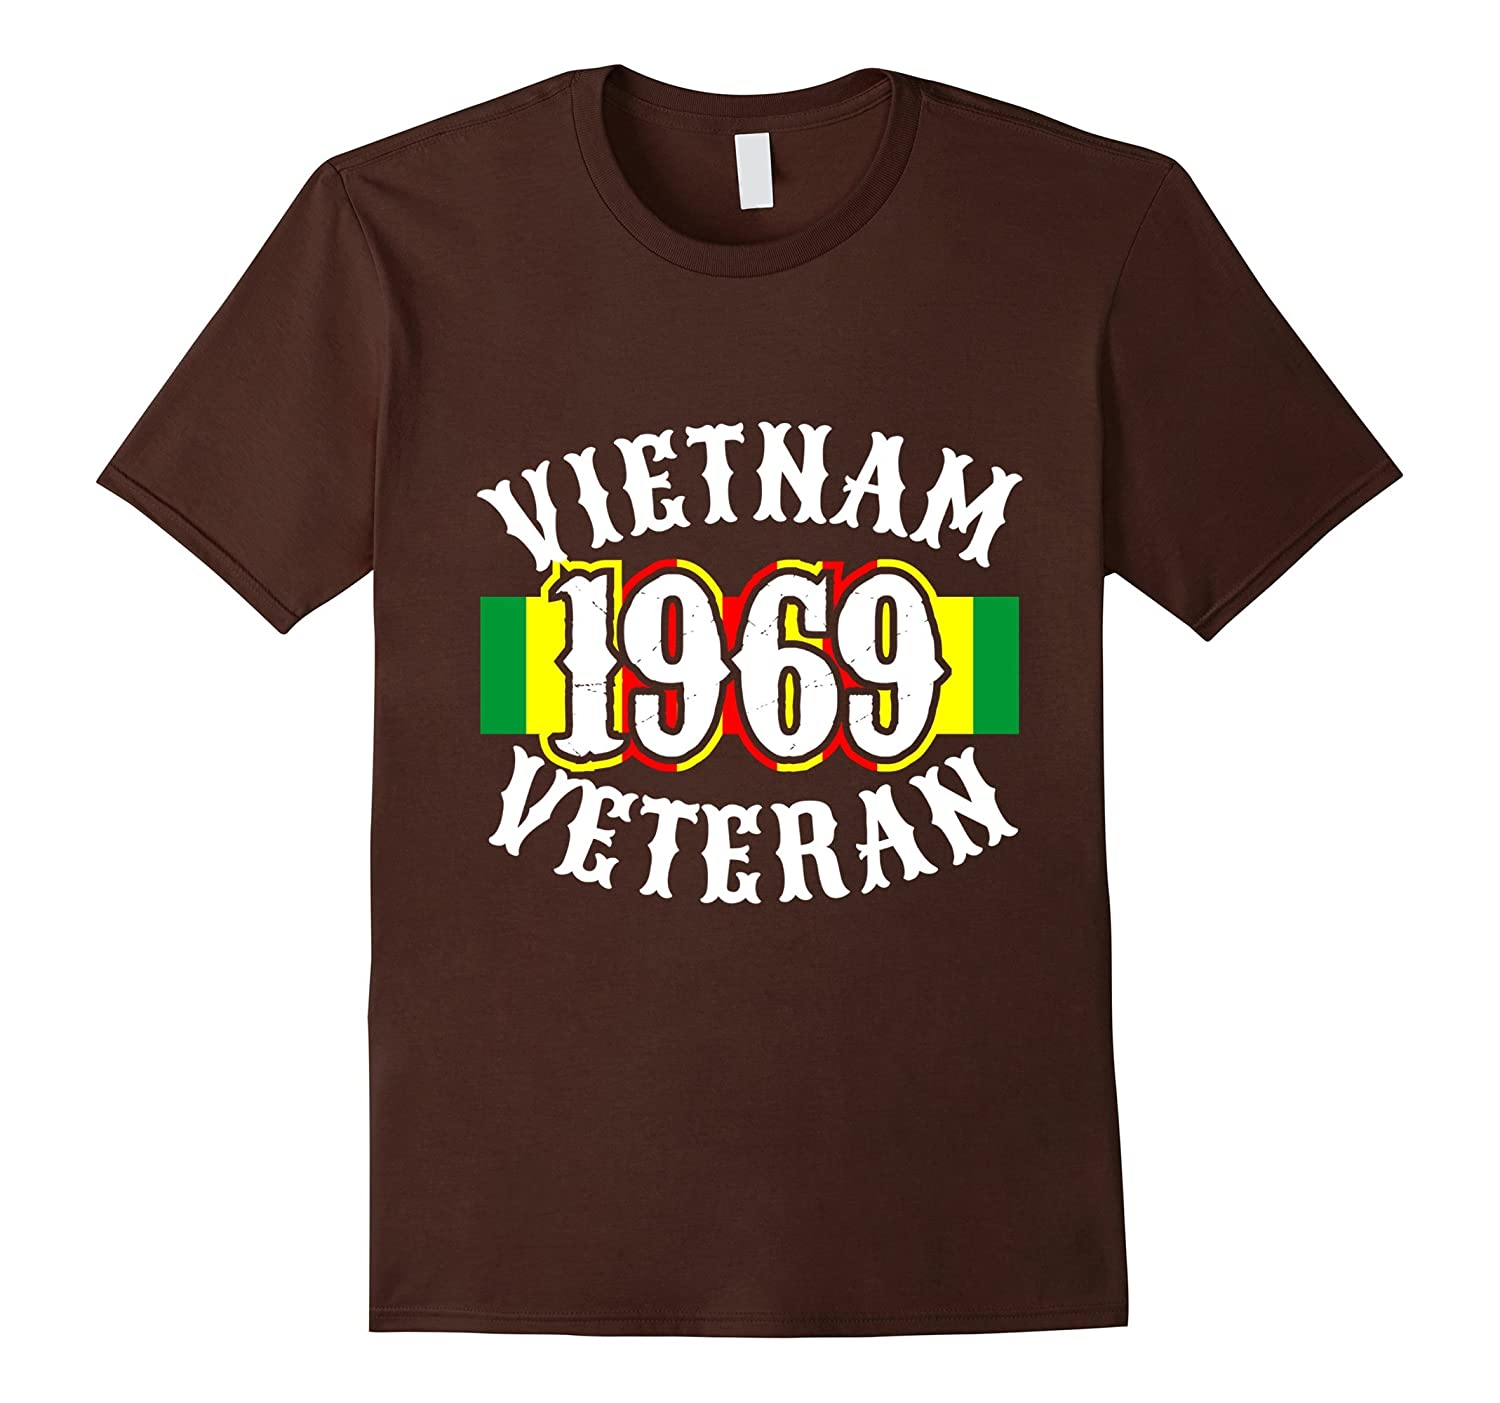 Mens Vietnam 1969 Veterans Tshirt for War Vets and Heroes-FL